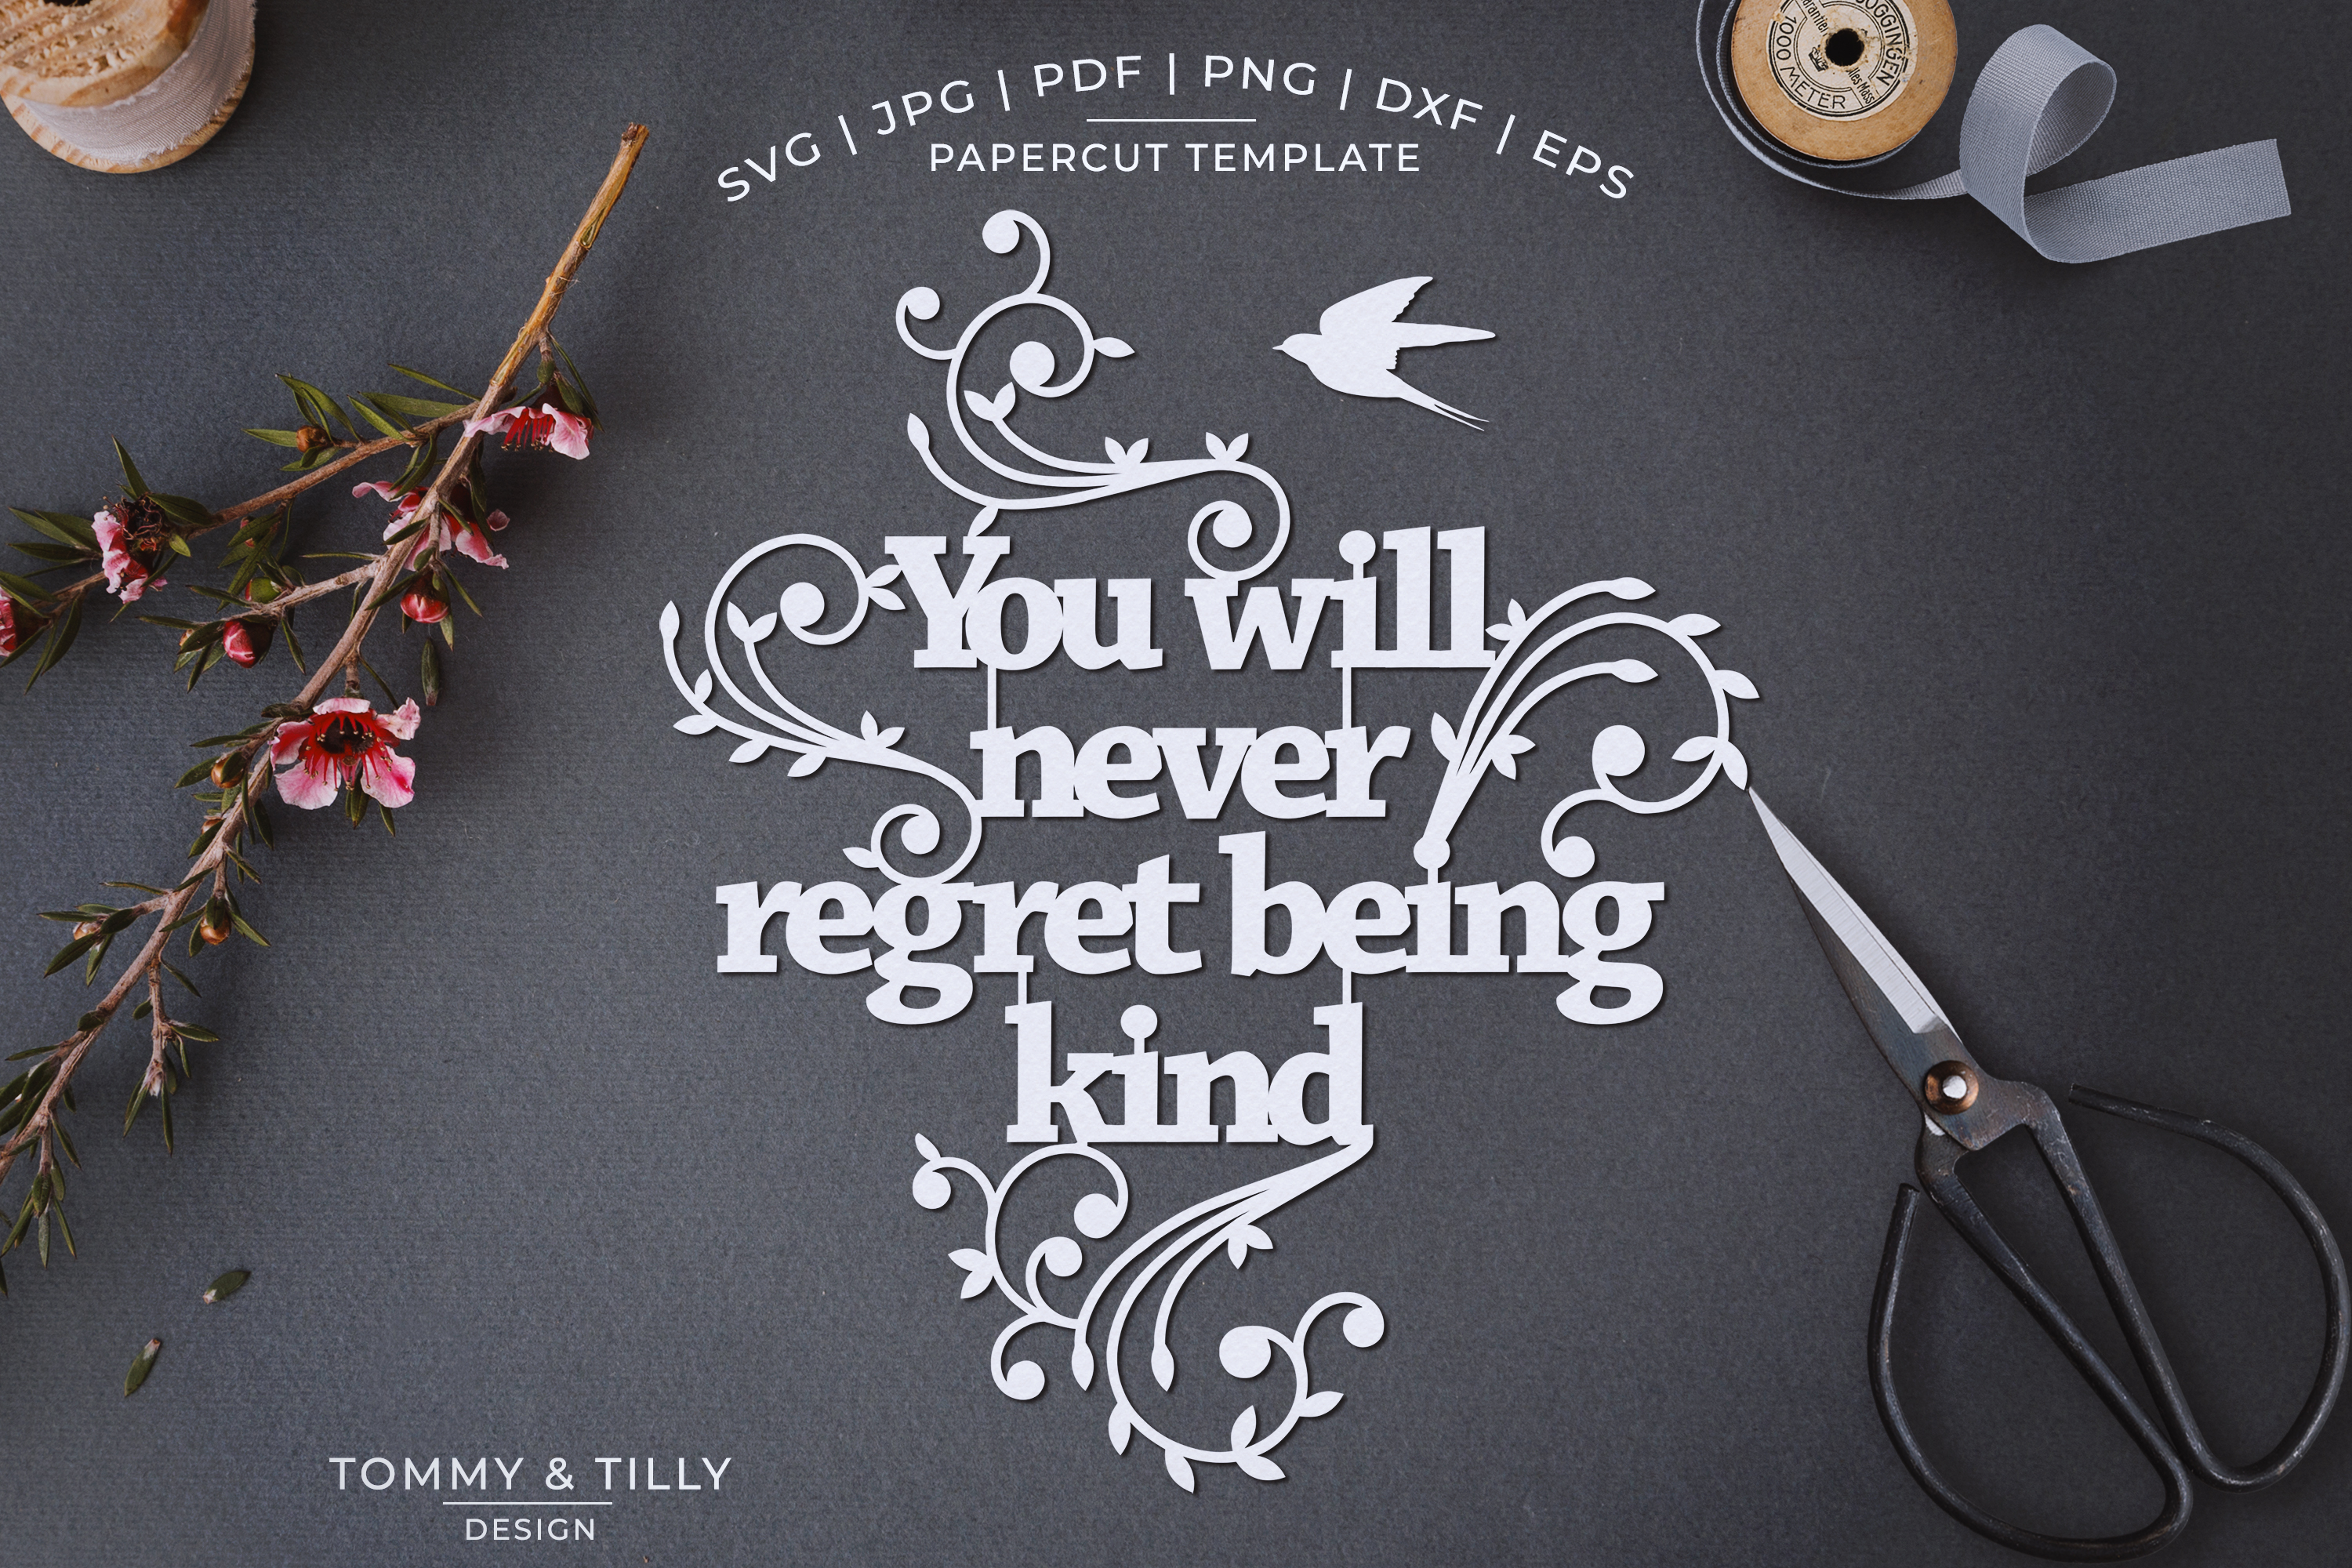 You will never regret being kind - Papercut SVG EPS DXF example image 1